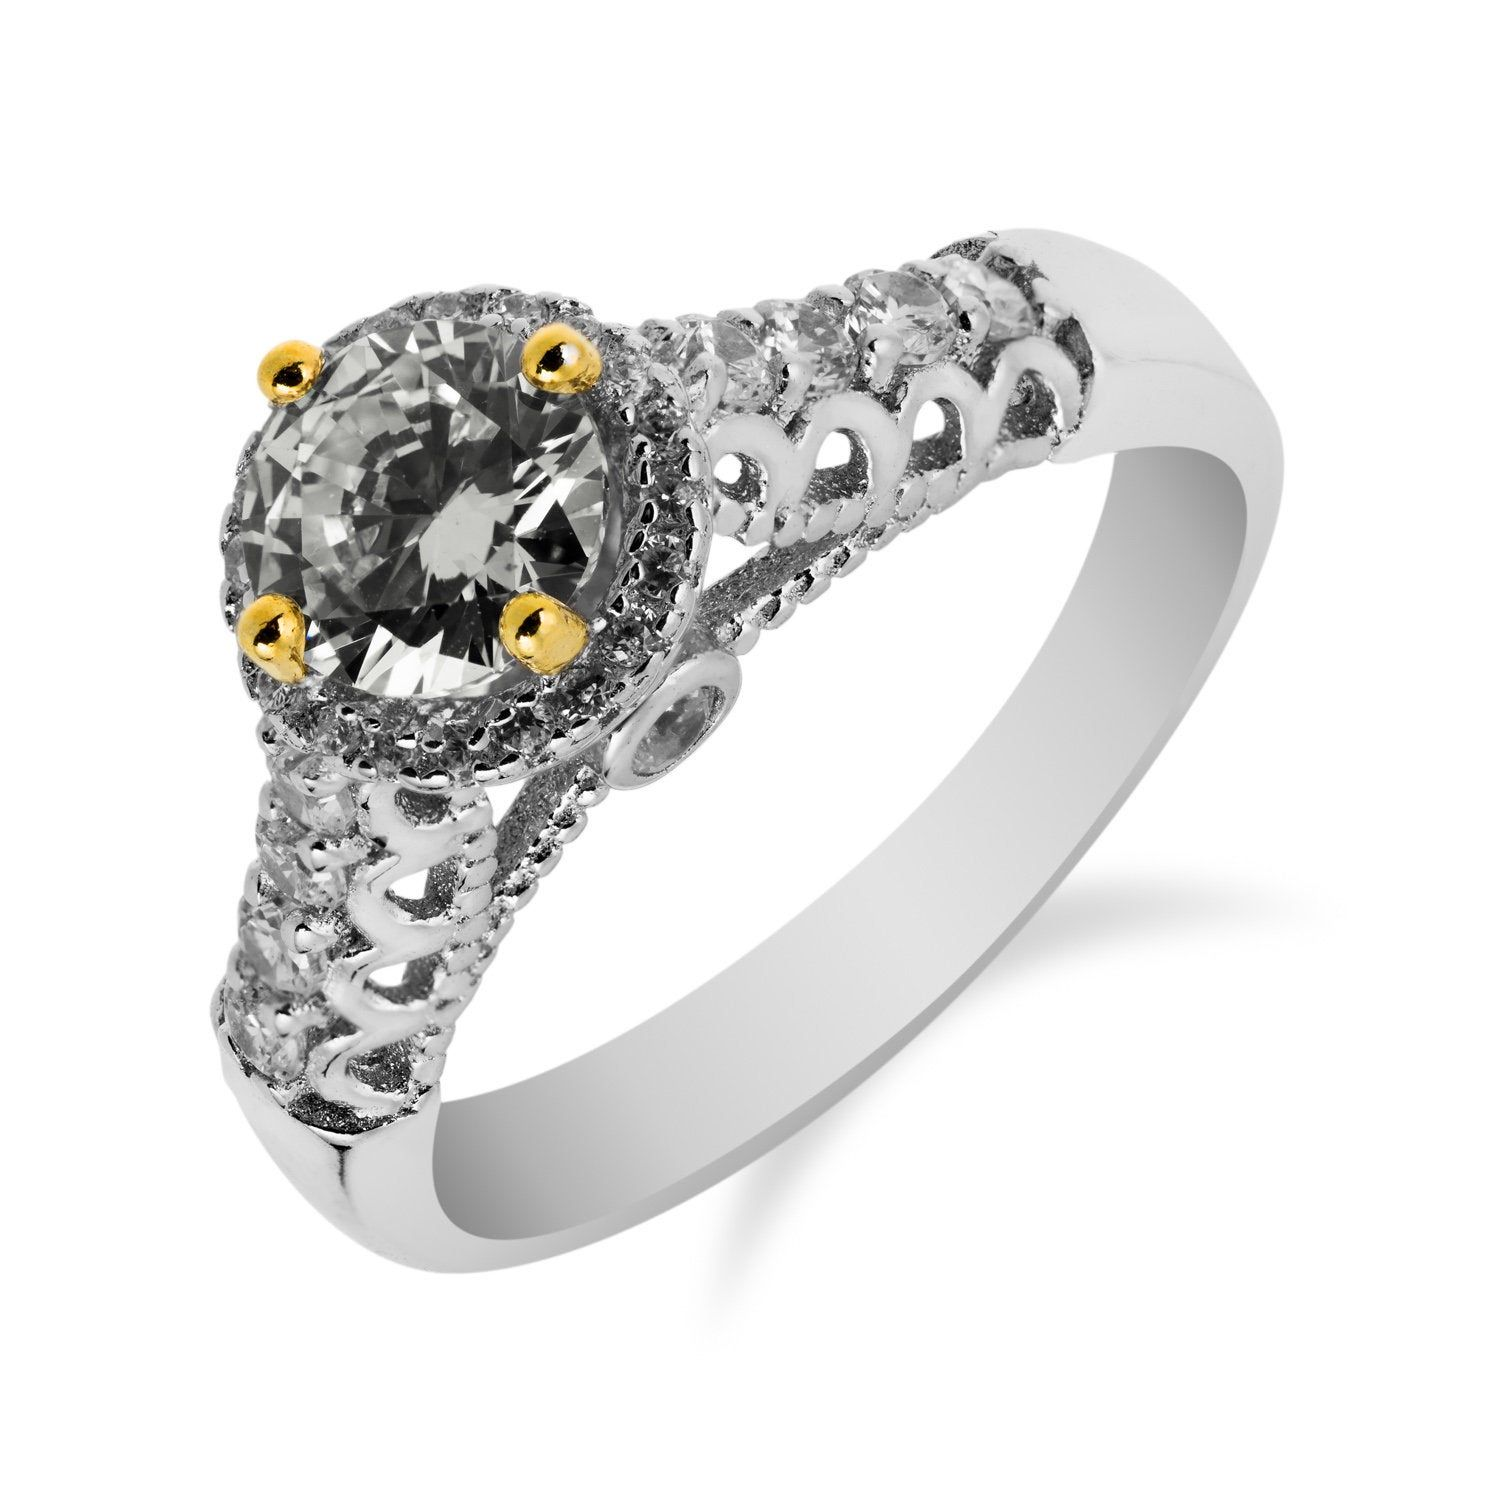 Solitaire Ring With Gold Points In 925 Sterling Silver With Cubic Zirconia In 2020 Silver Rings Handmade 925 Silver Rings Bridal Earrings Drop